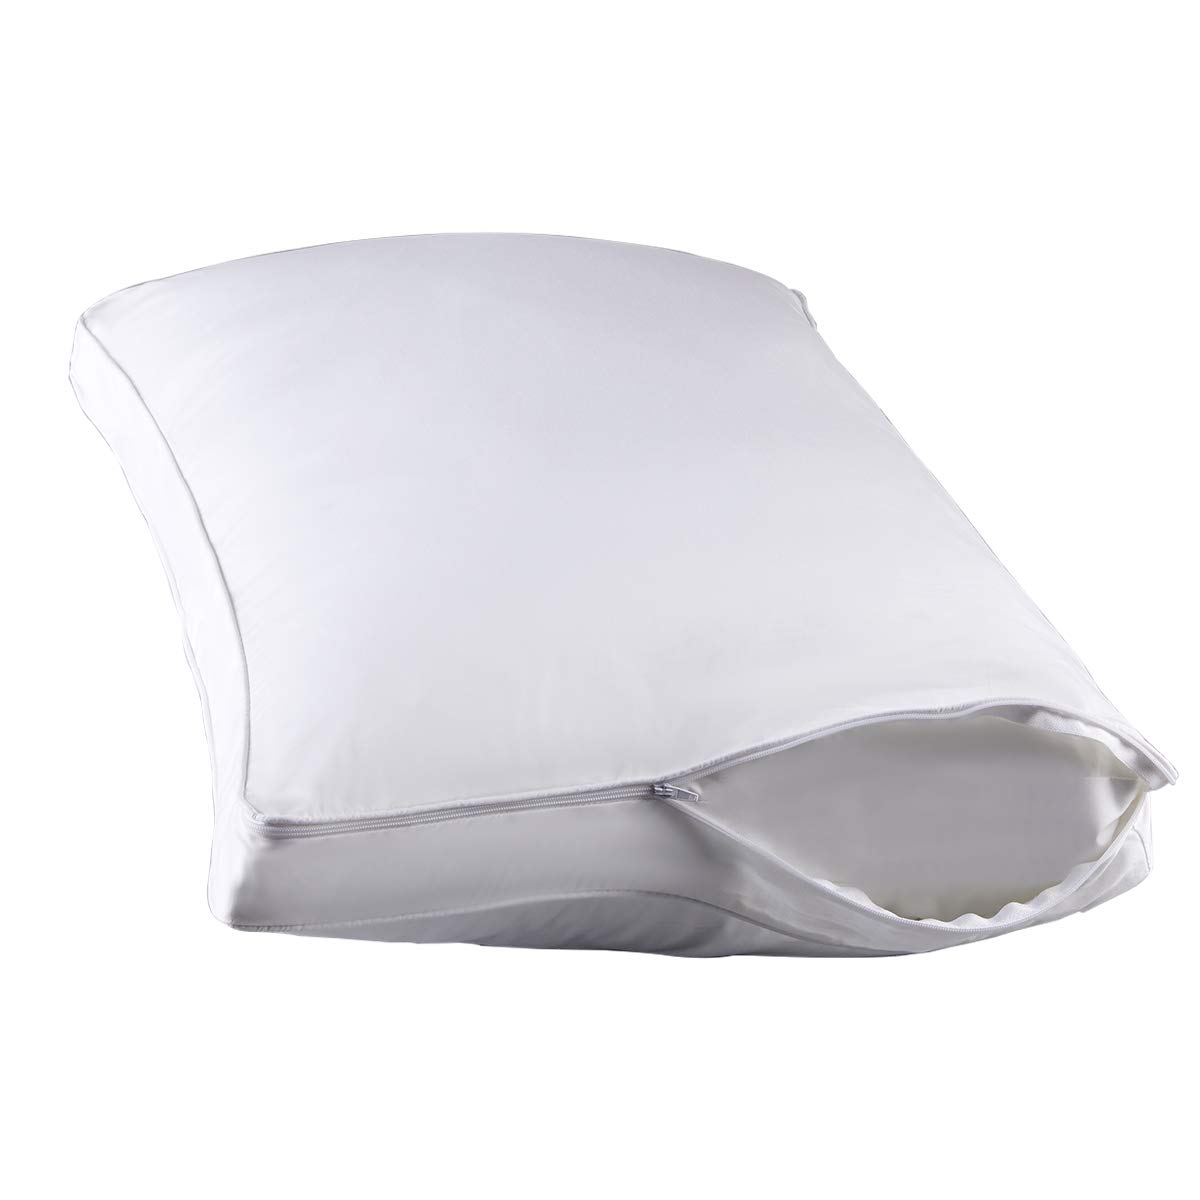 STONECREST Gusseted Pillow Protector-Set of 1, Hypoallergenic Zipper Premium Gusset Pillow Encasement Covers(white2/gusset Queen)